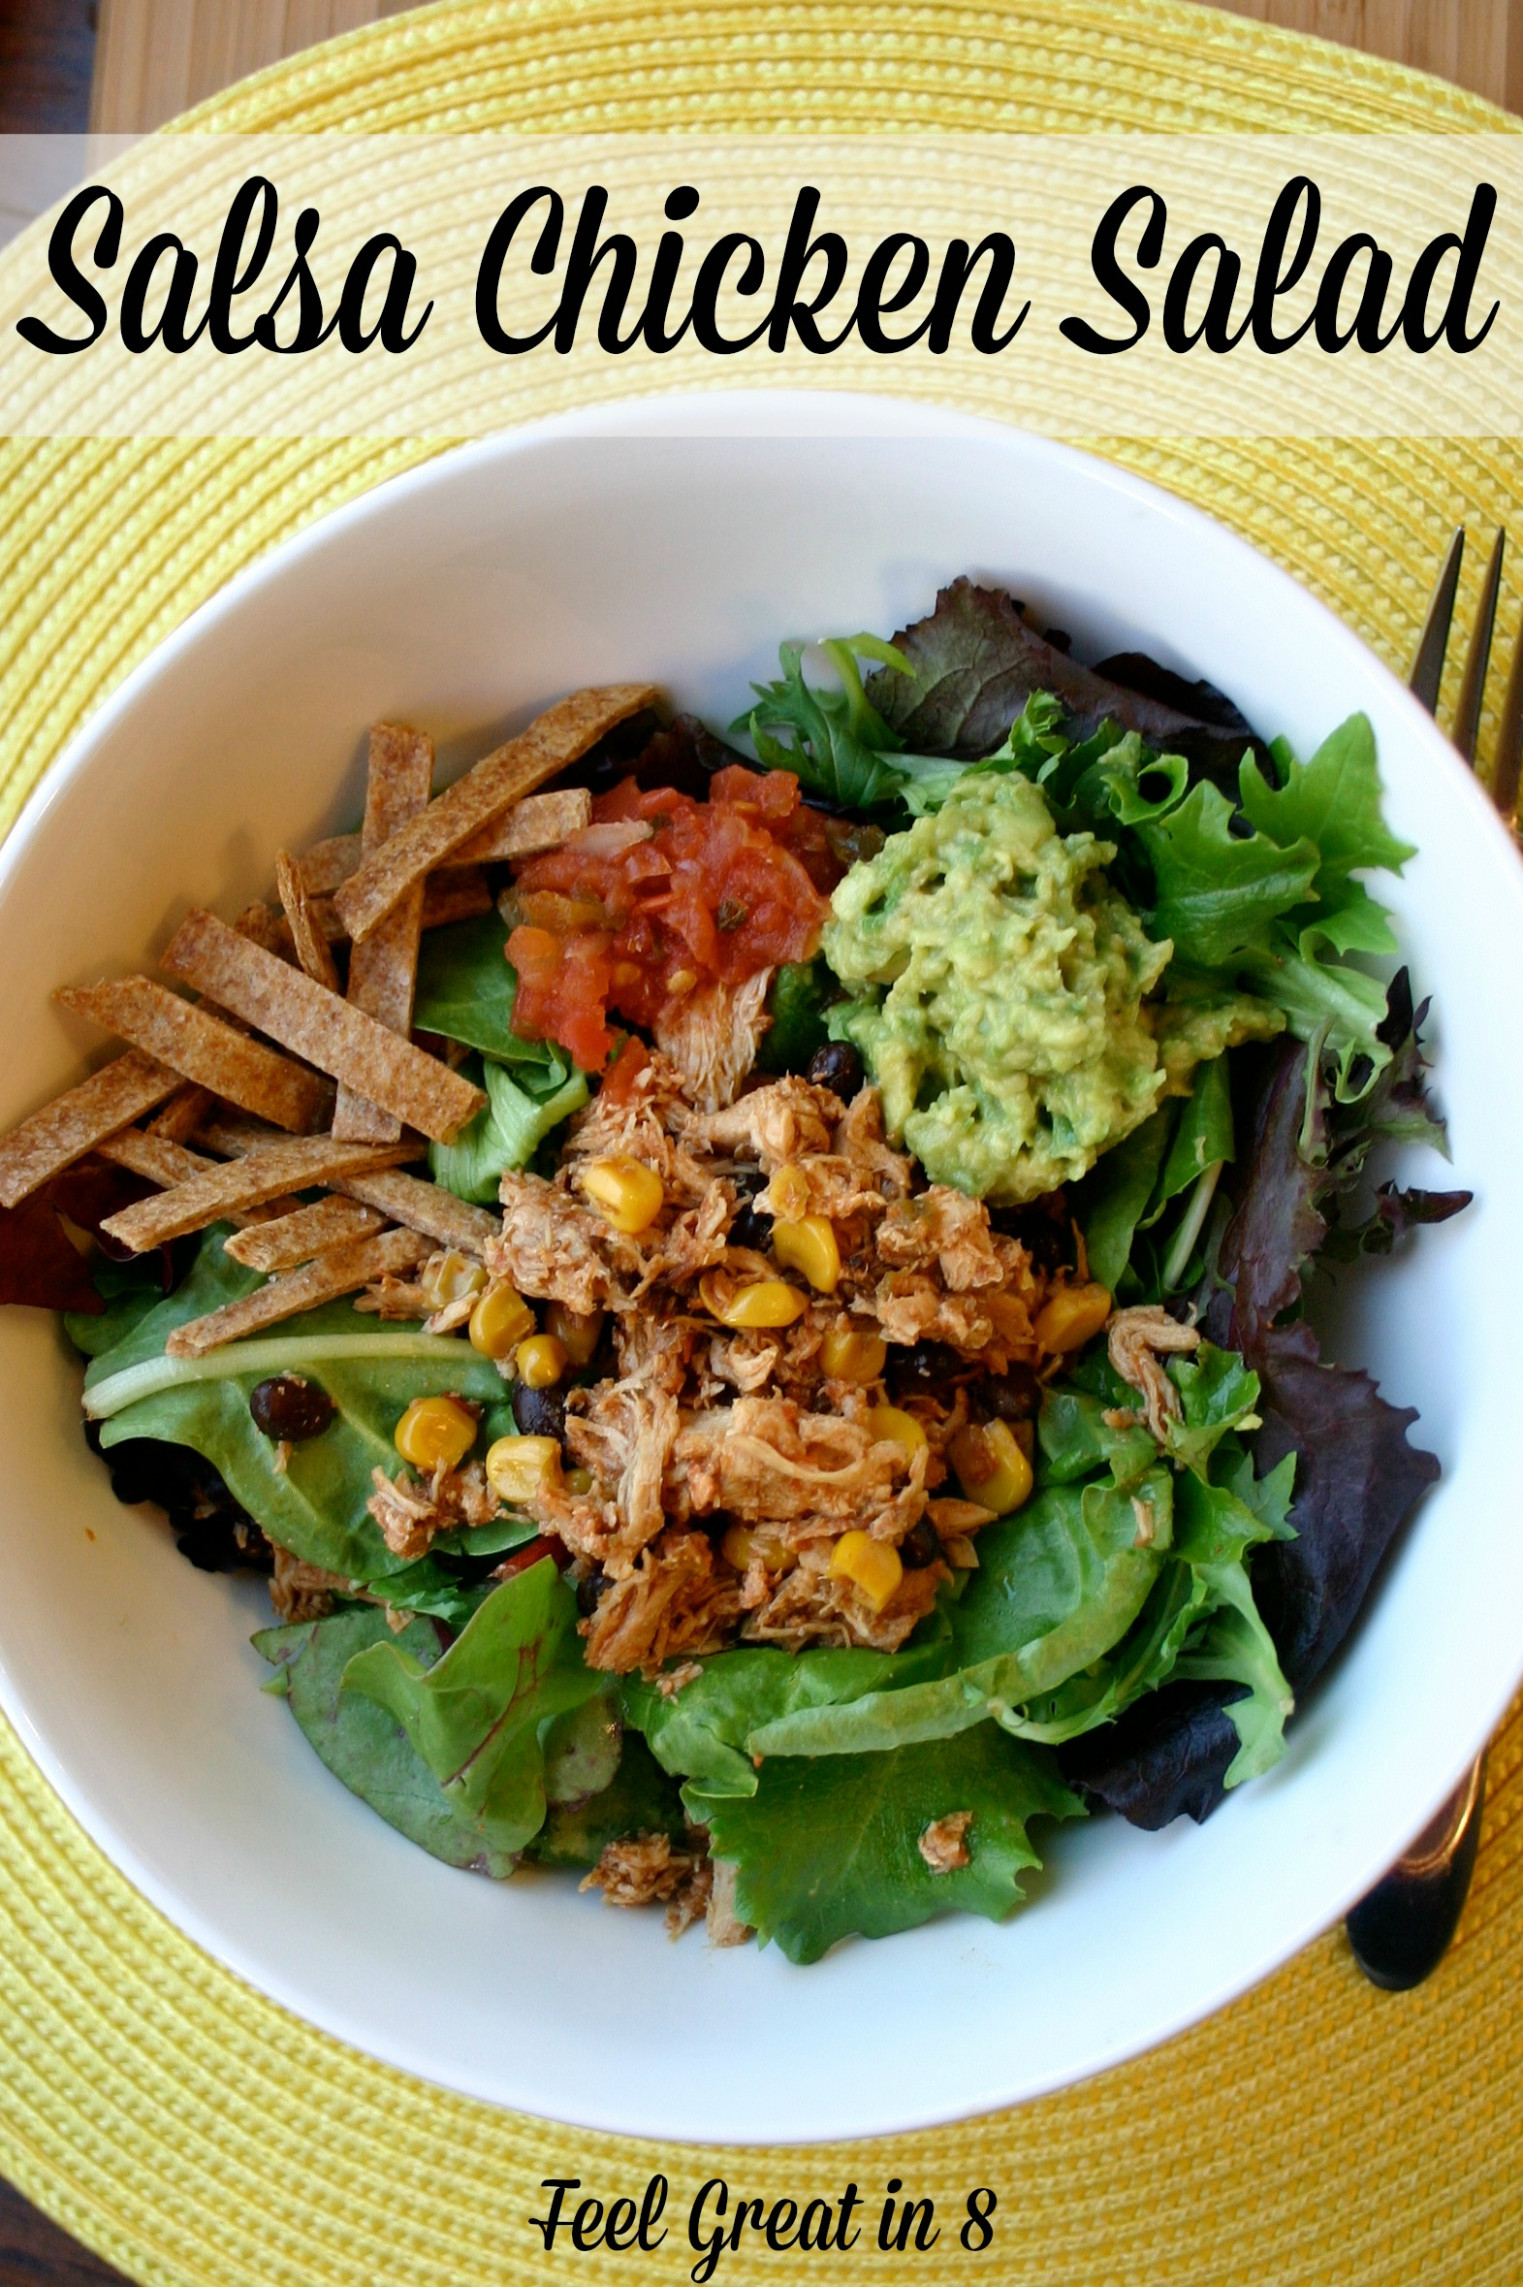 Salsa Chicken Salad - healthy recipes salads